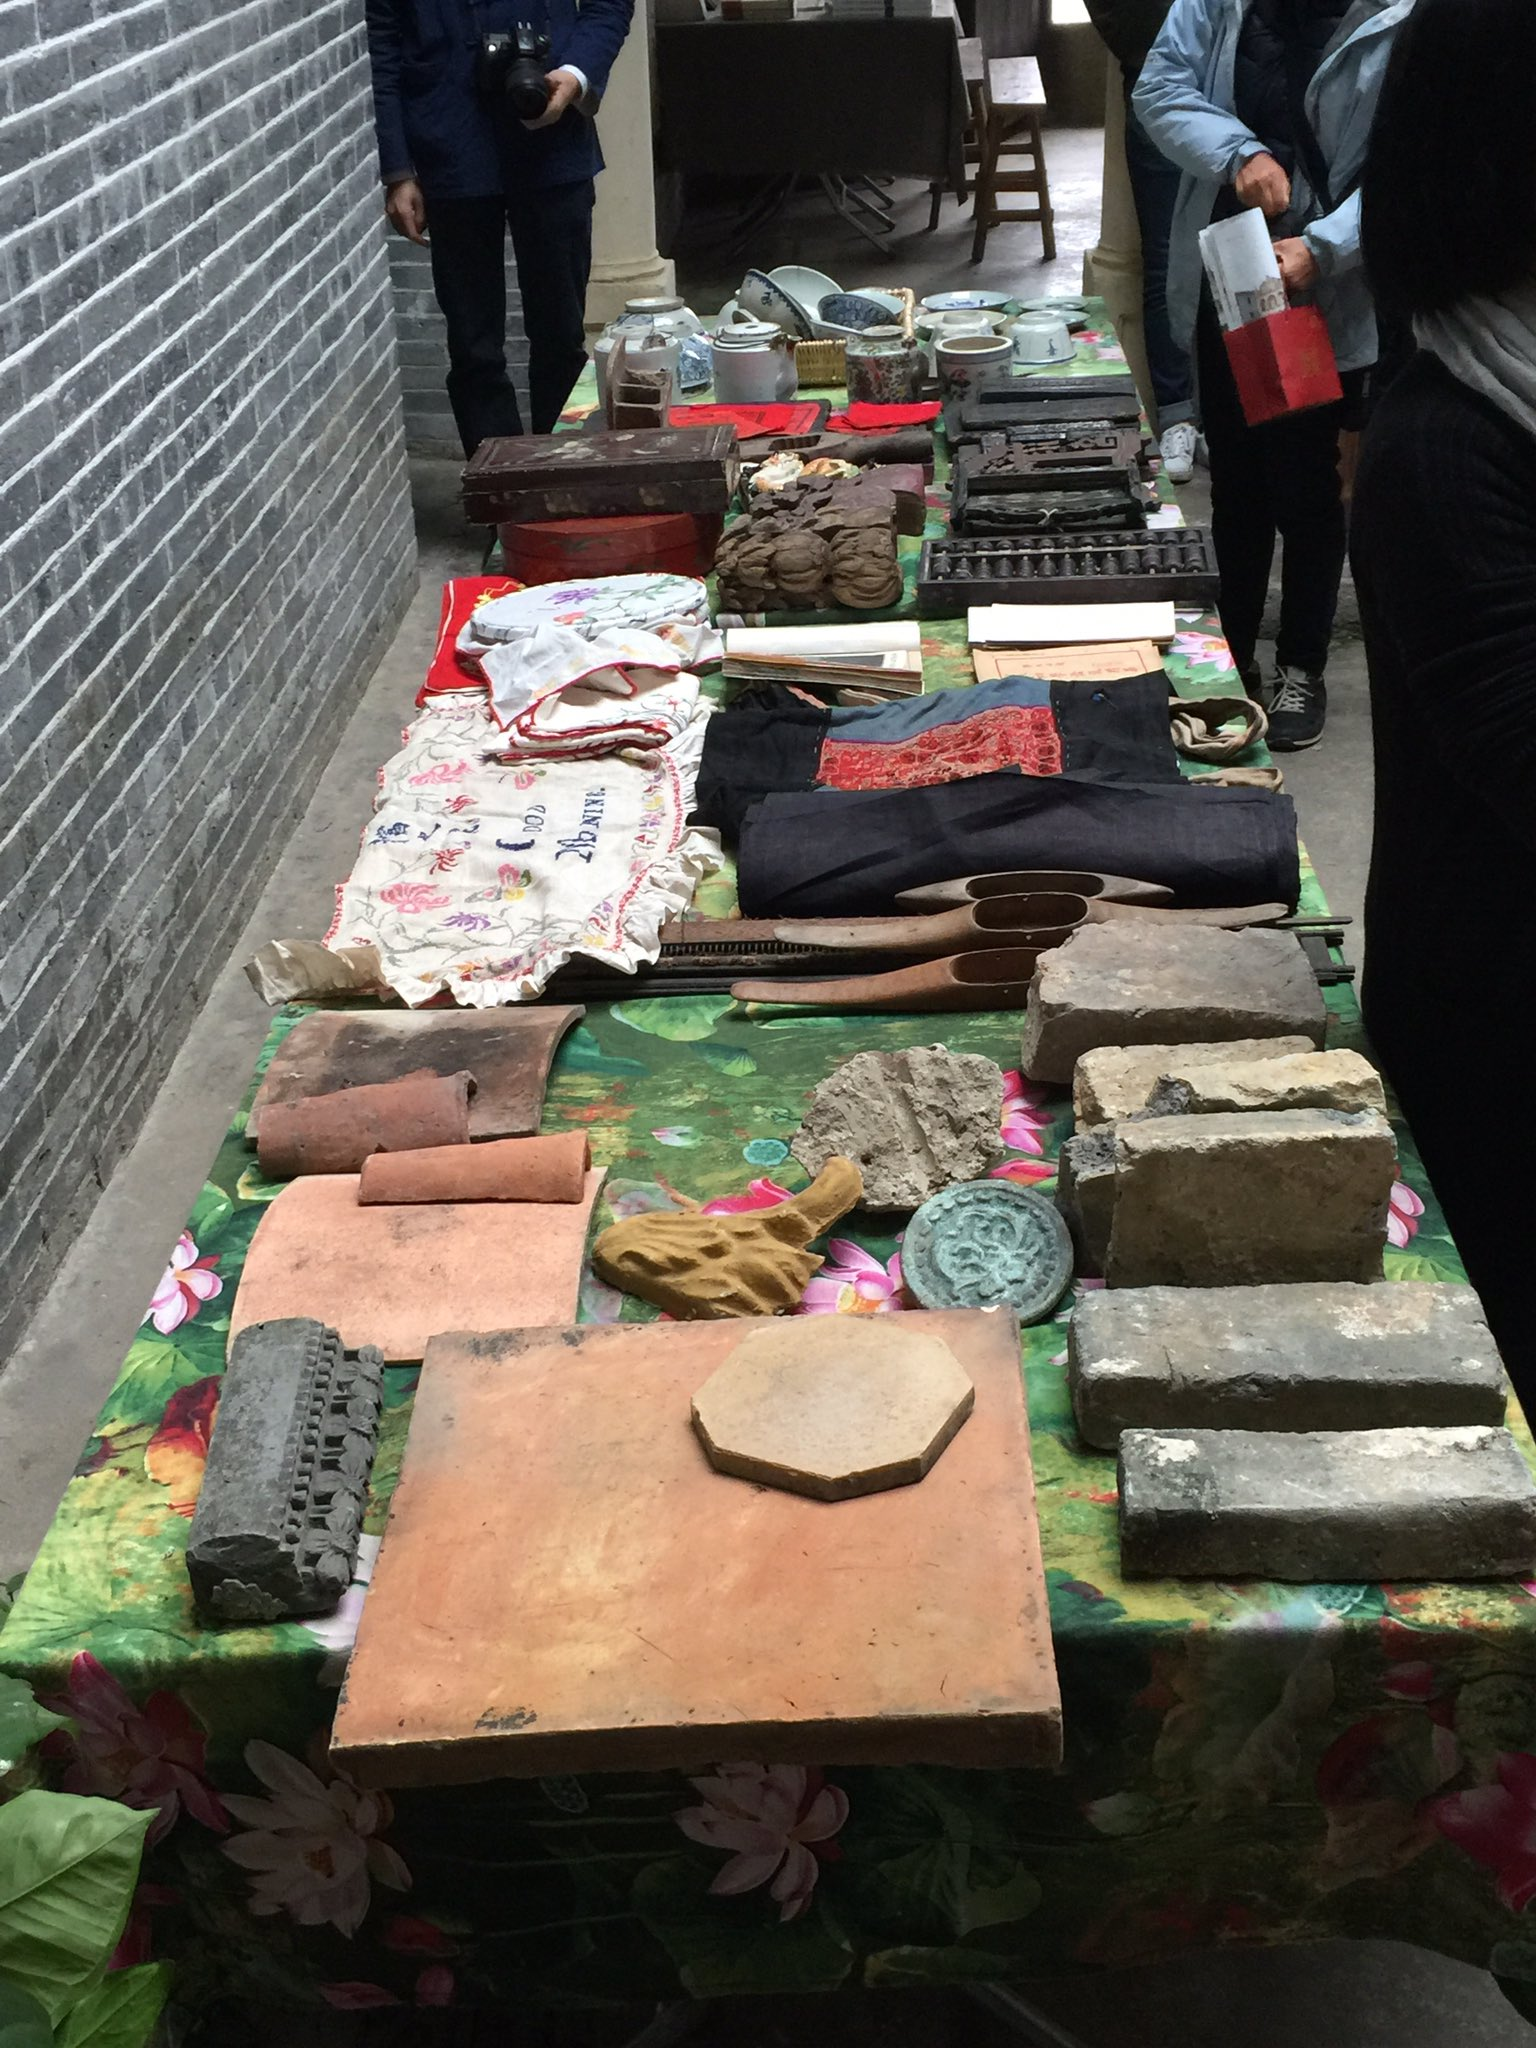 Treasures from Candong village – tiles, embroidery, abacus, crockery, books... #cahht17 https://t.co/obWcAC2e6b